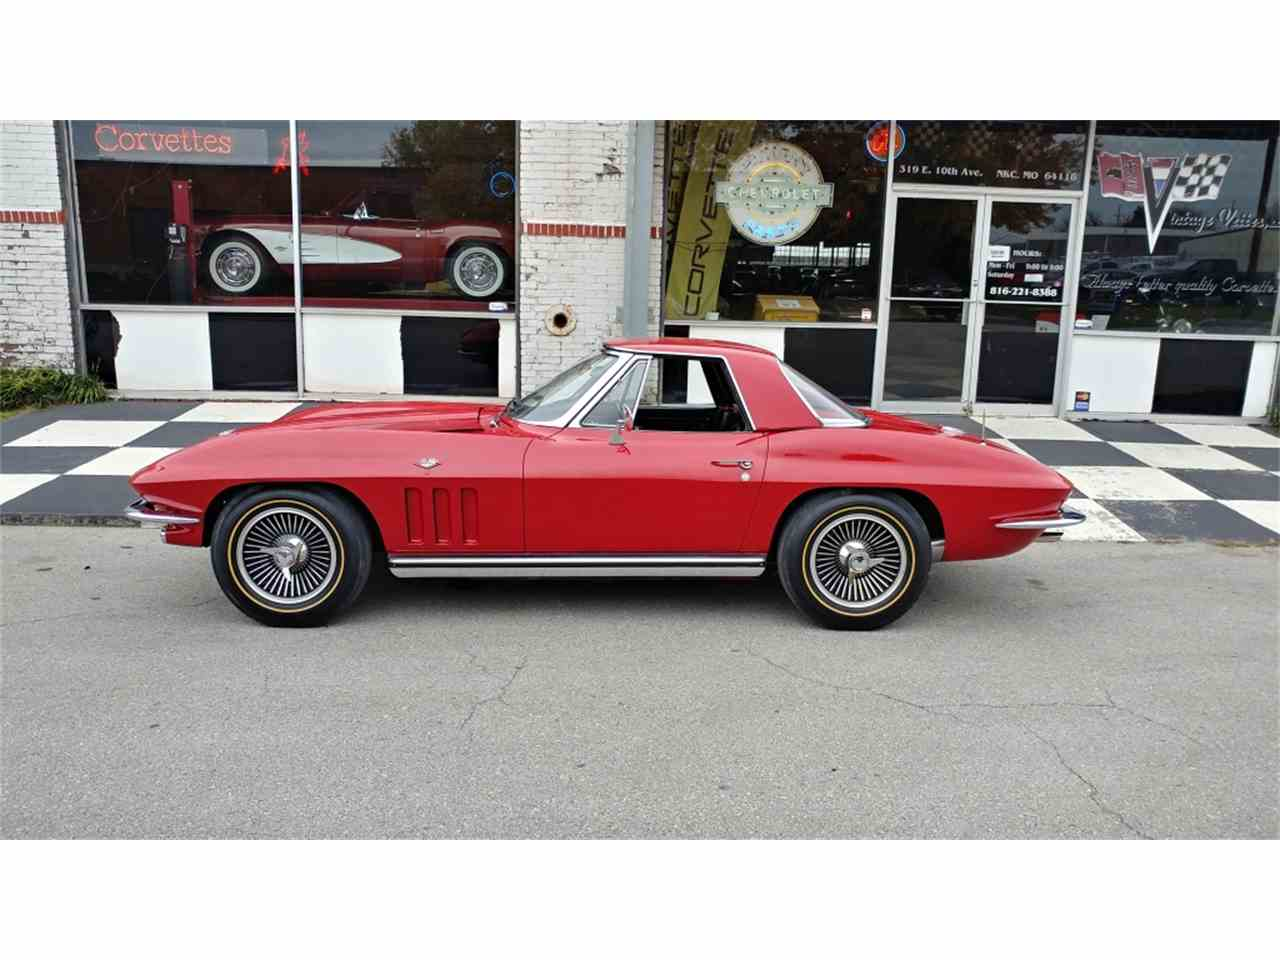 Large Picture of Classic '65 Corvette located in Missouri - $69,995.00 Offered by Vintage Vettes, LLC - MO2I